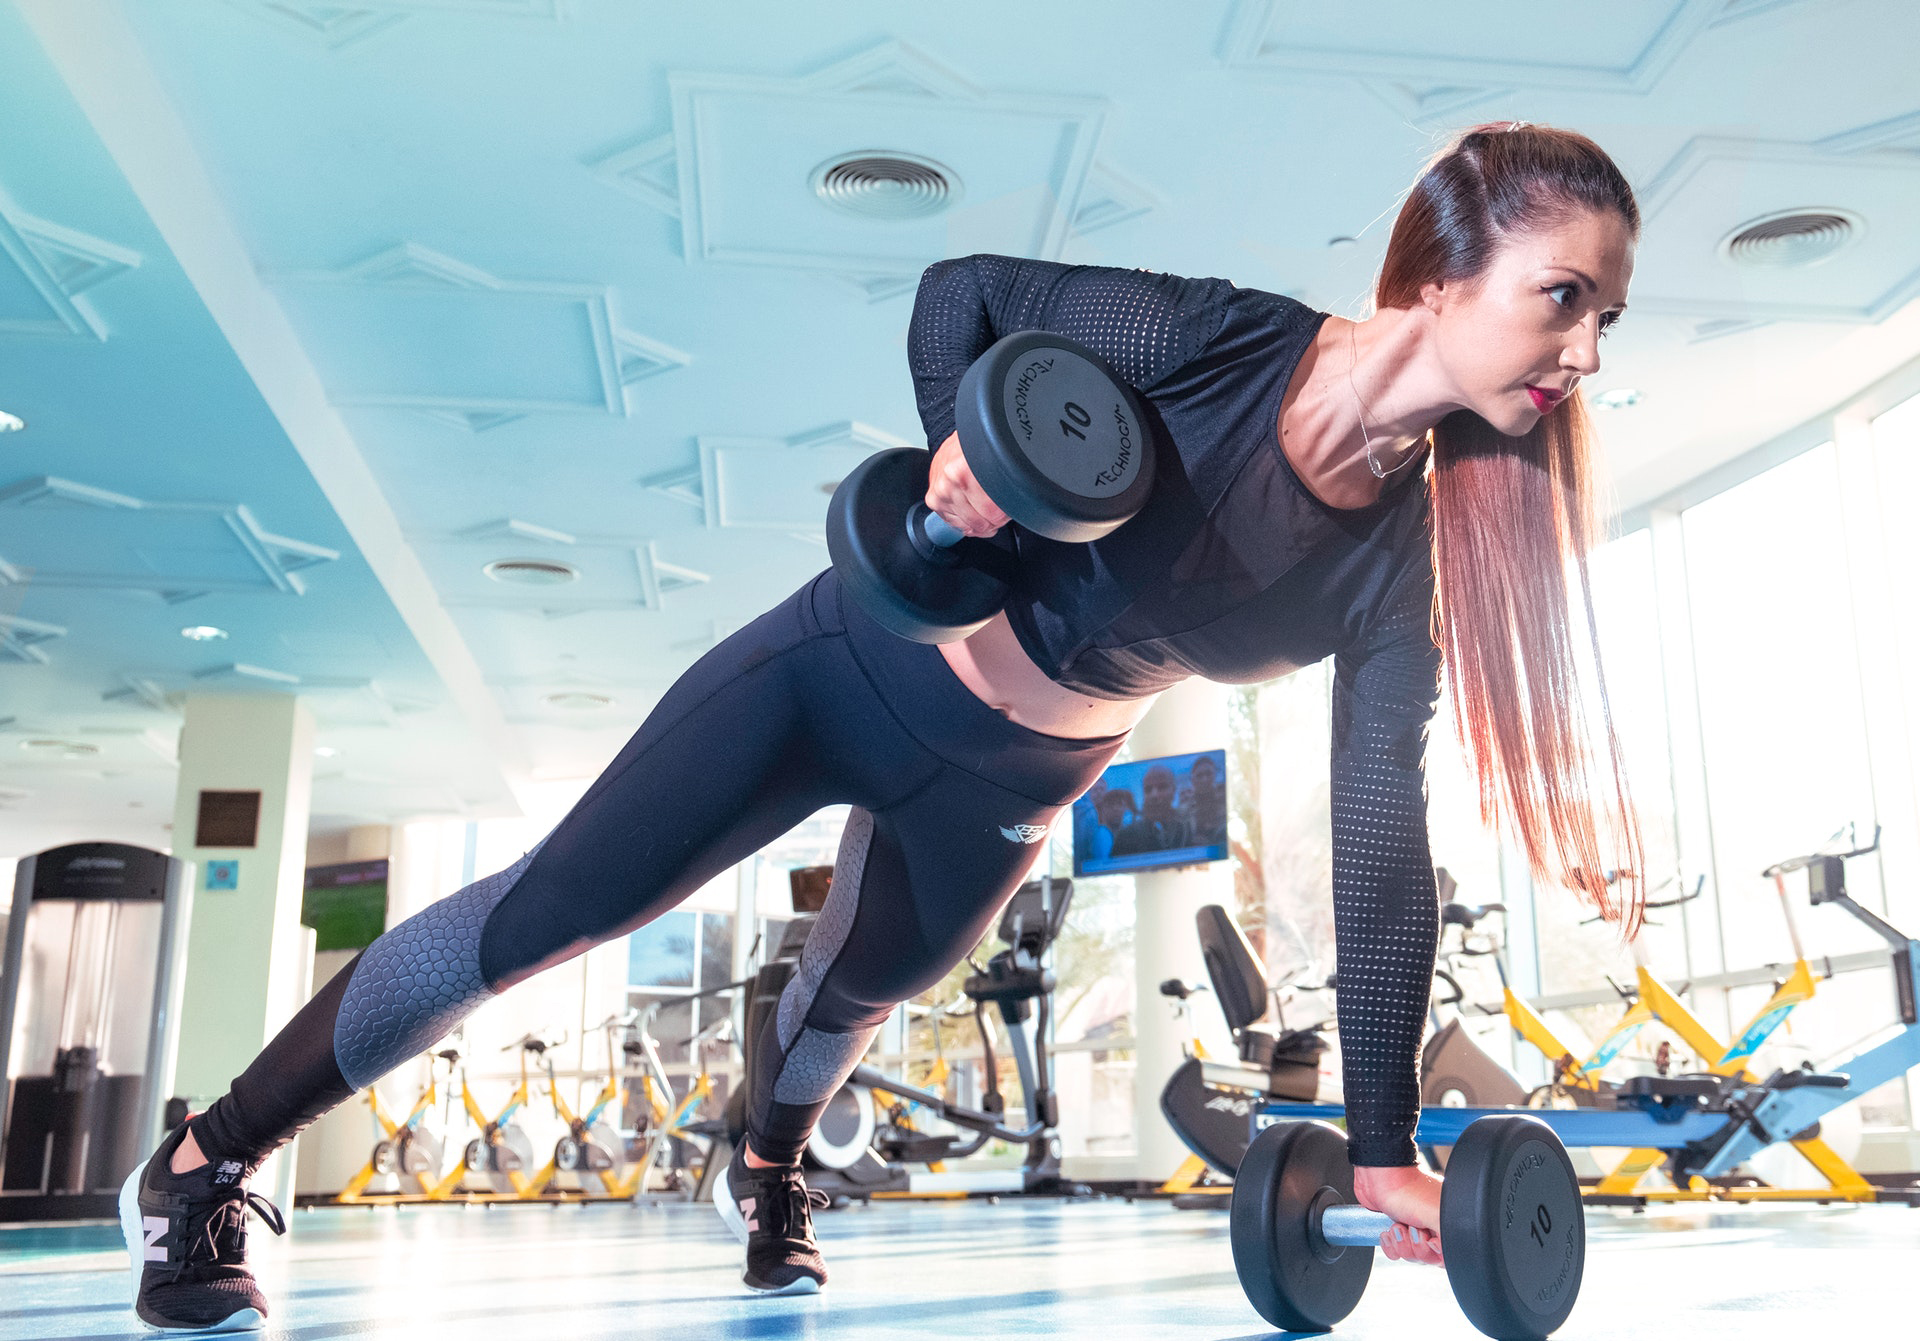 Weight Training For Men And Women: What's The Difference?